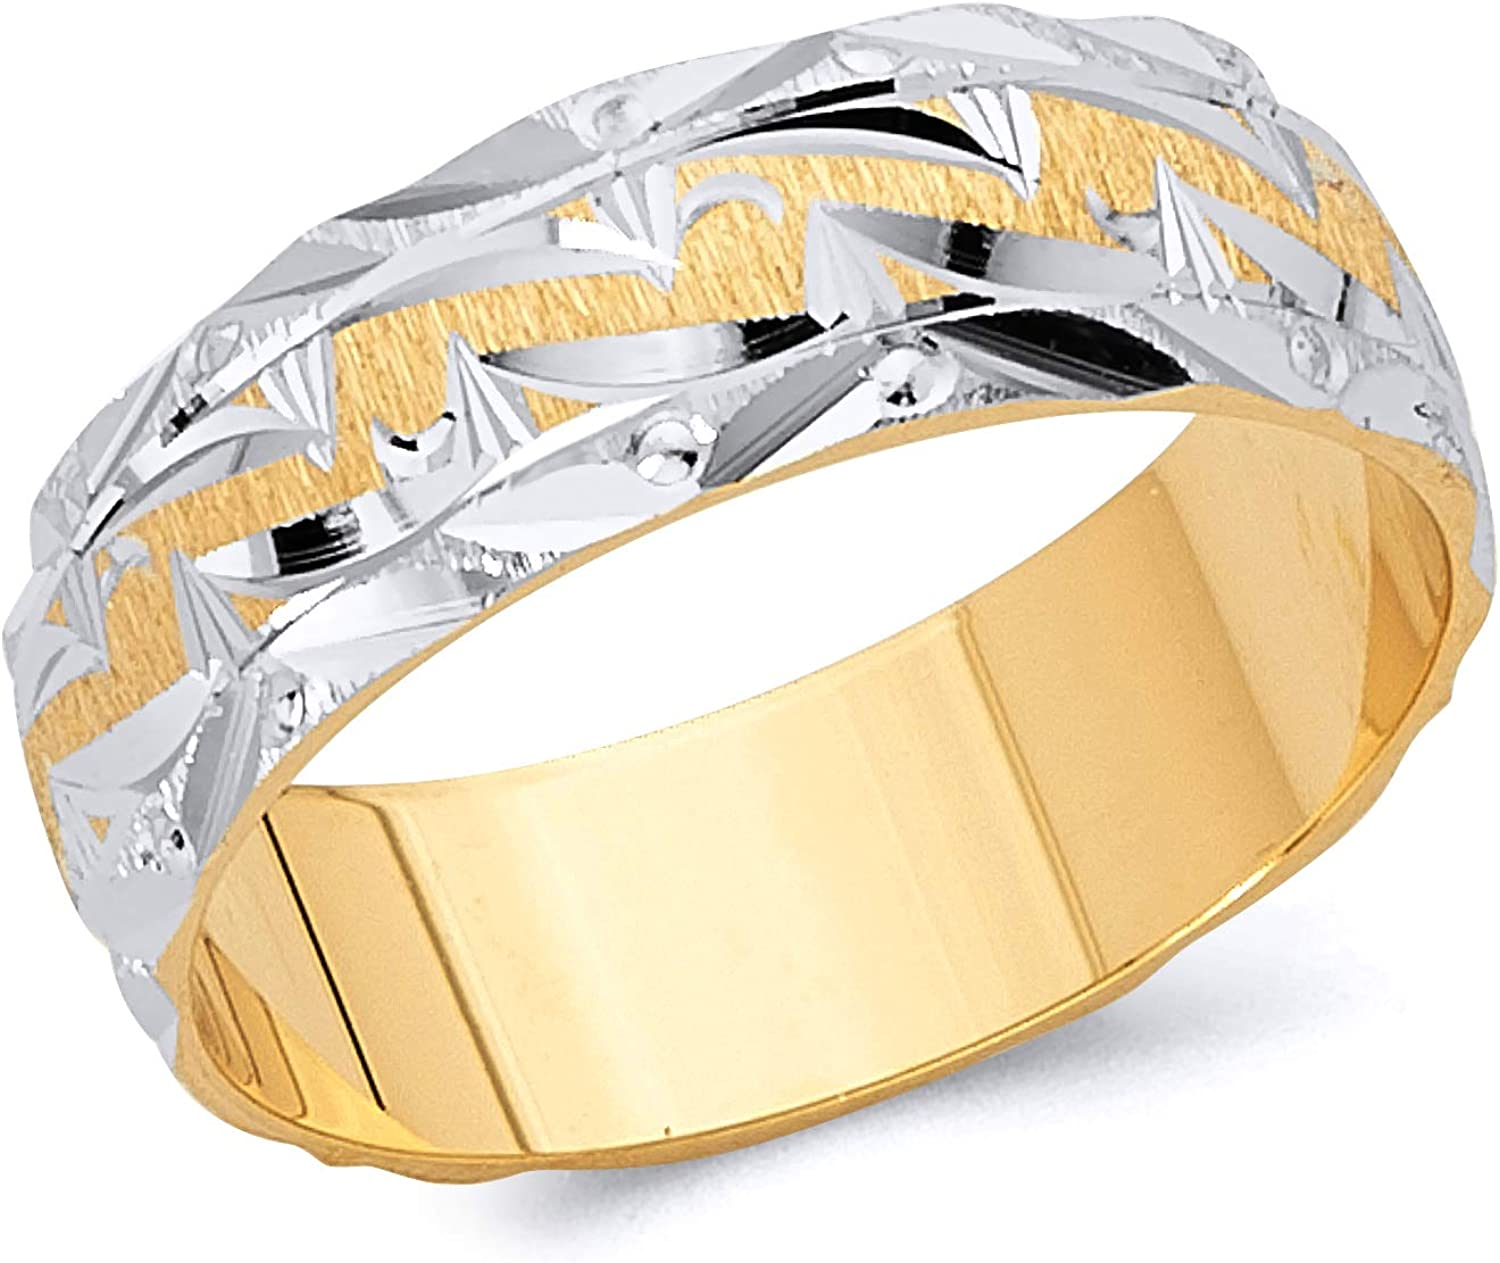 Wellingsale 14k Two 2 Tone White and Yellow Gold Polished Satin 6MM Diamond Cut Classic Fit Wedding Band Ring